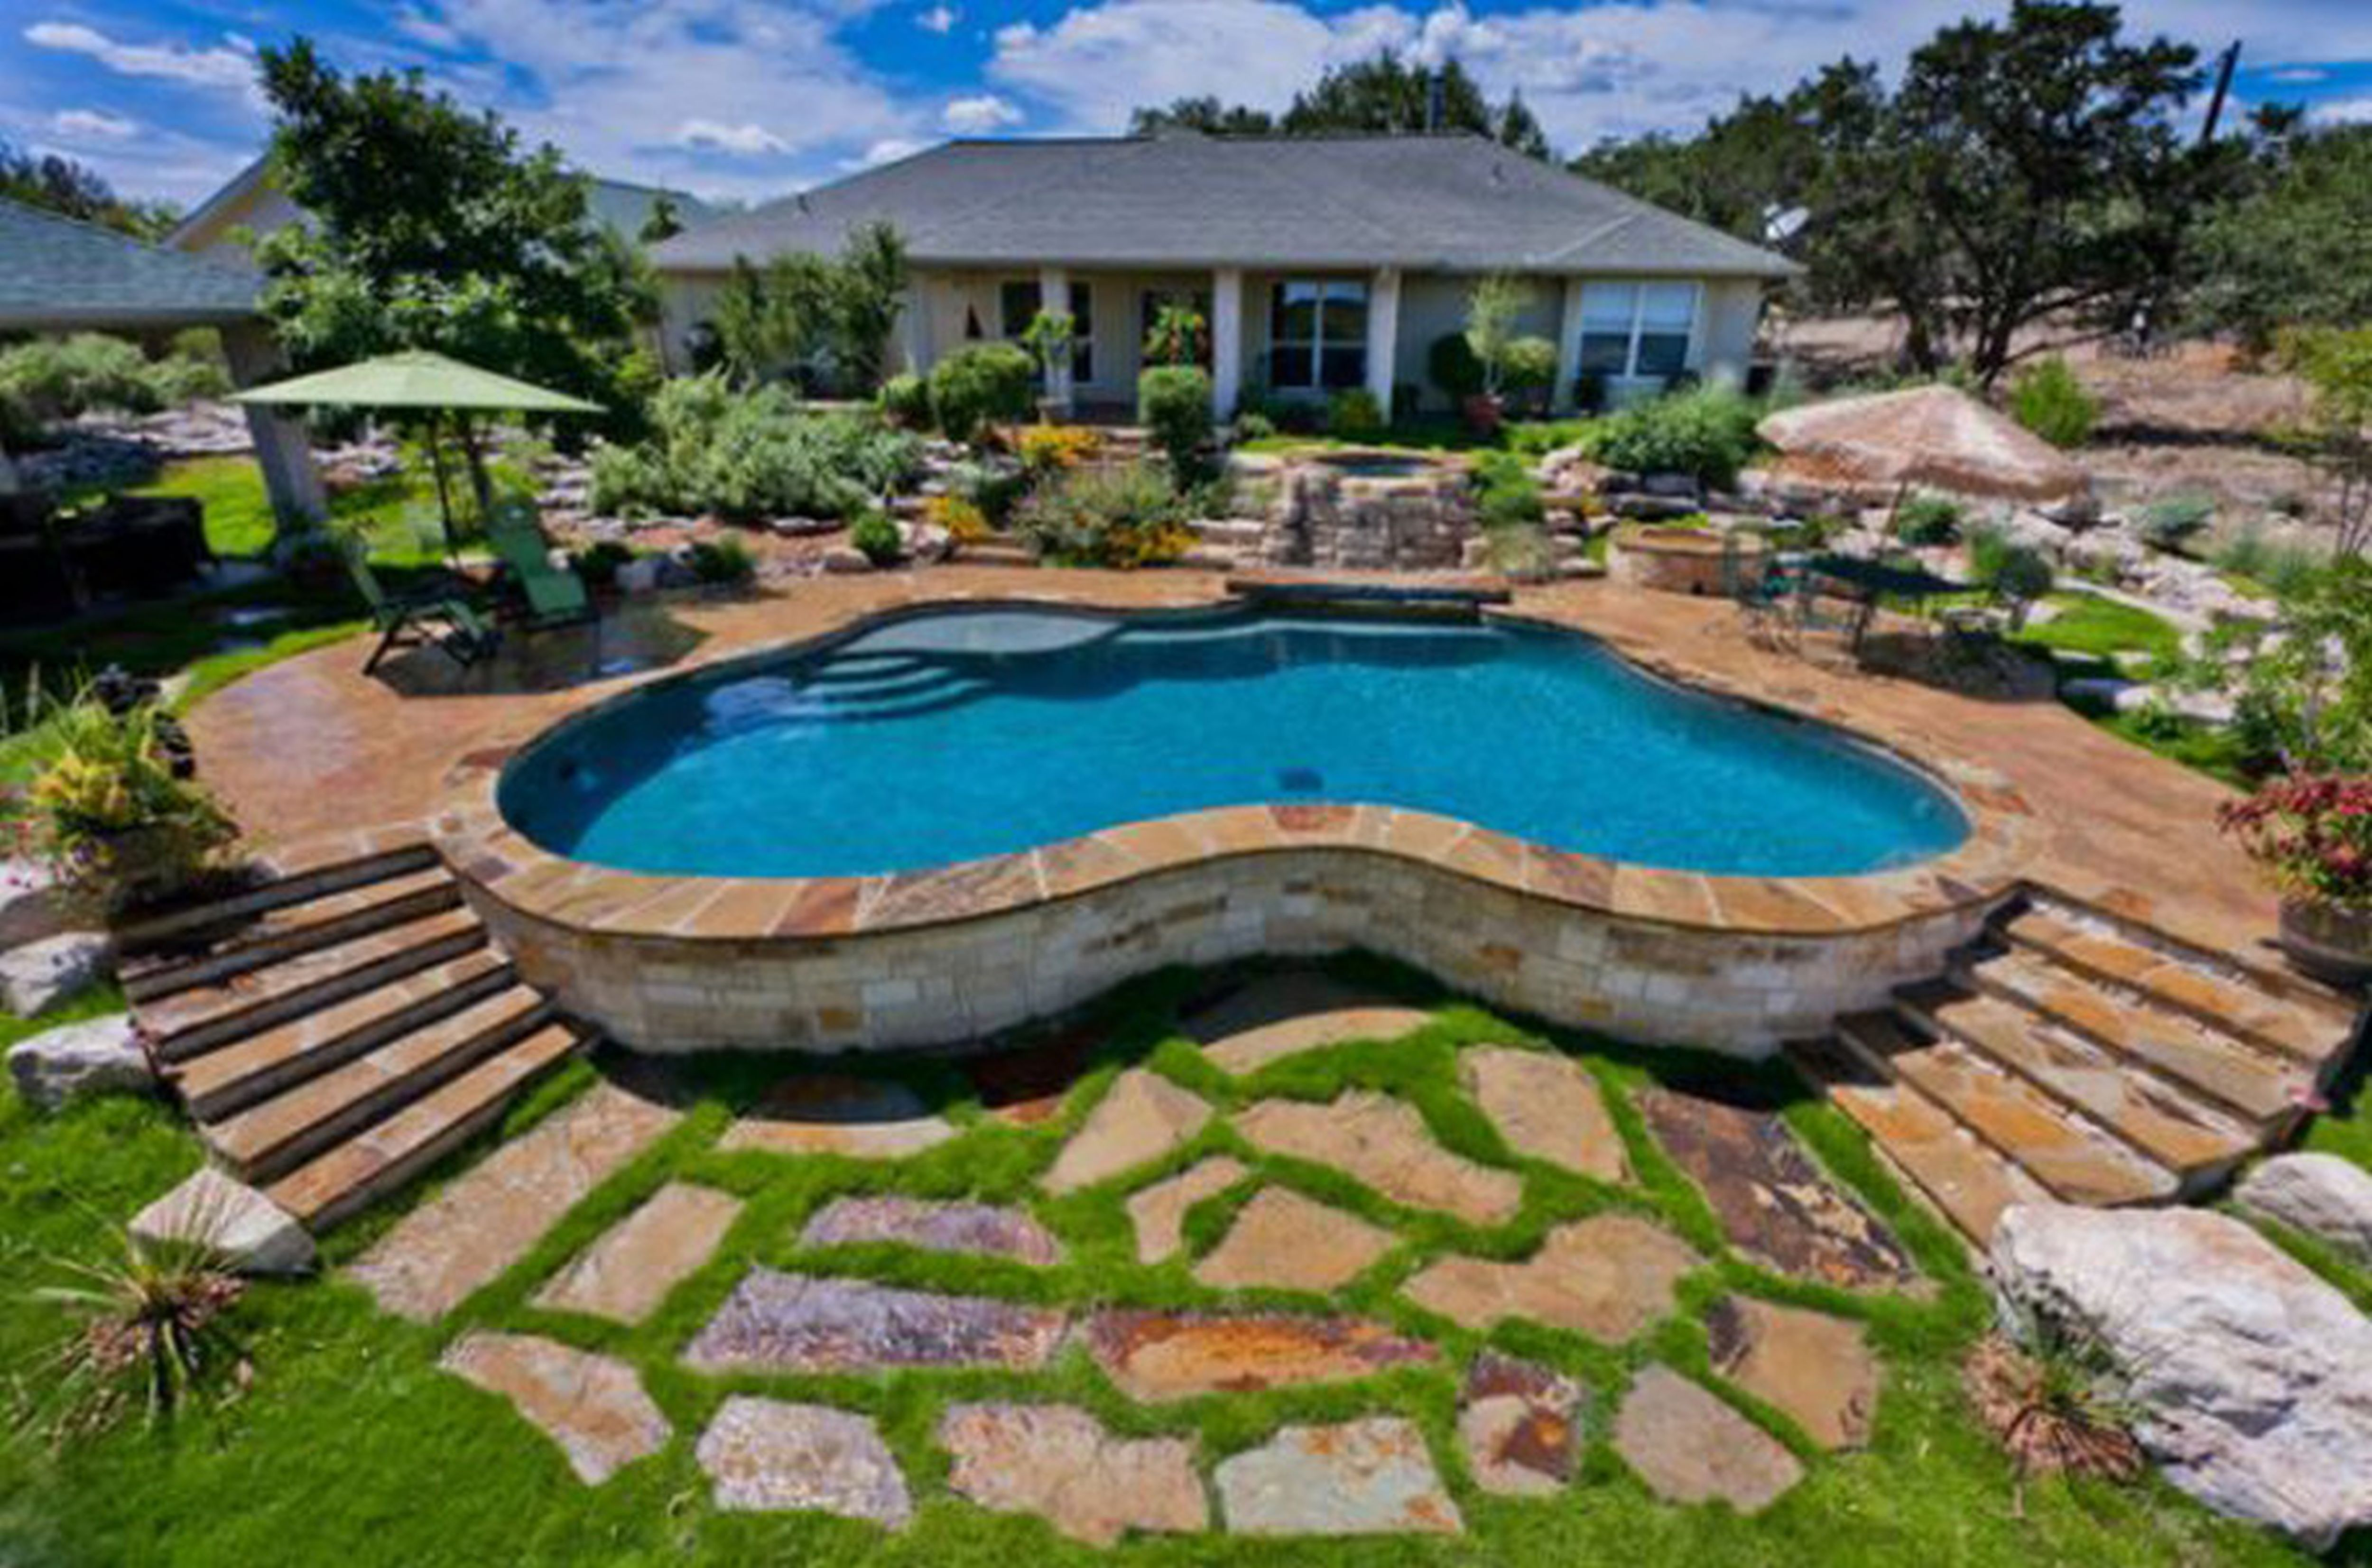 Small Backyard Pools Designs | Mini Inground Pools | Backyard Pool Designs